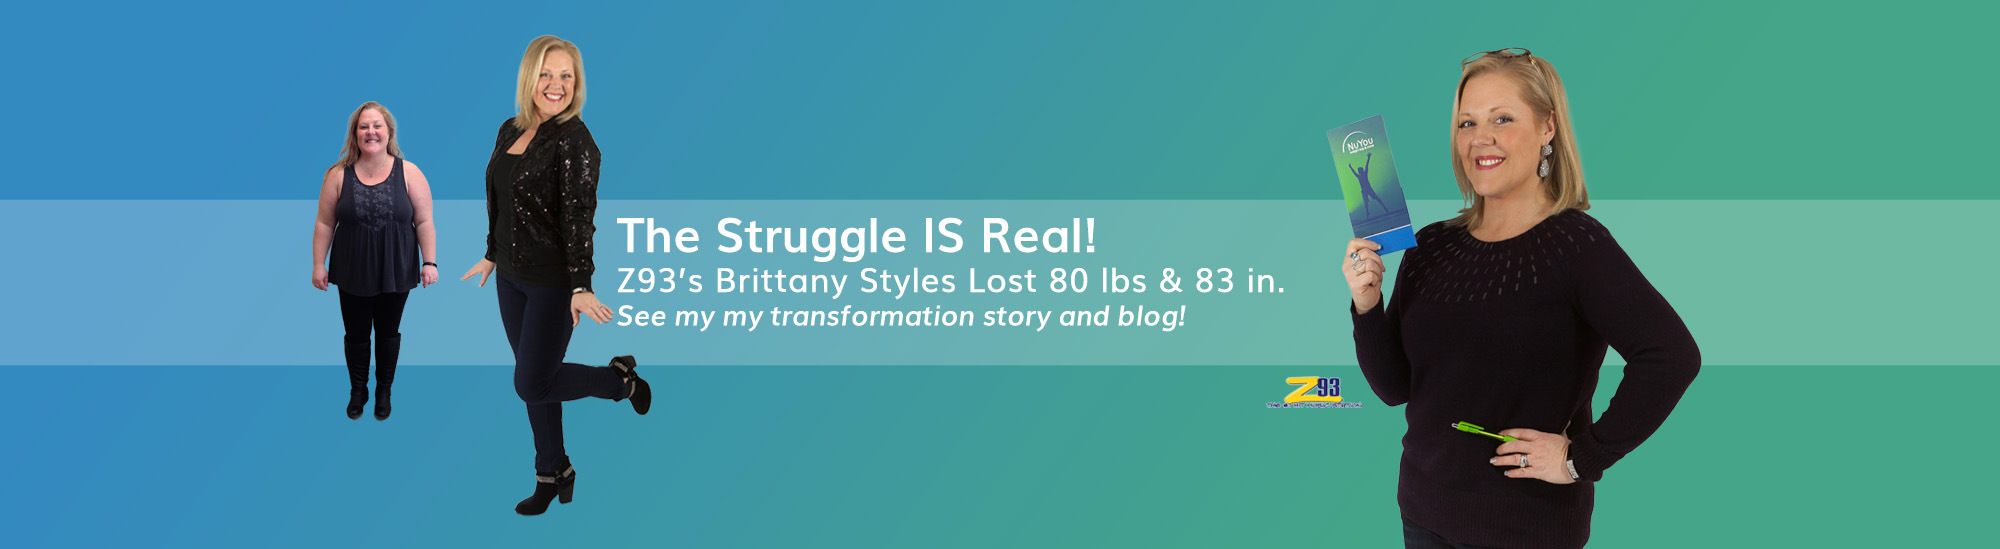 Read Z93's Brittany Styles Transformation story, info about her weight loss program, listen to her radio spots and read her blog. Click image.